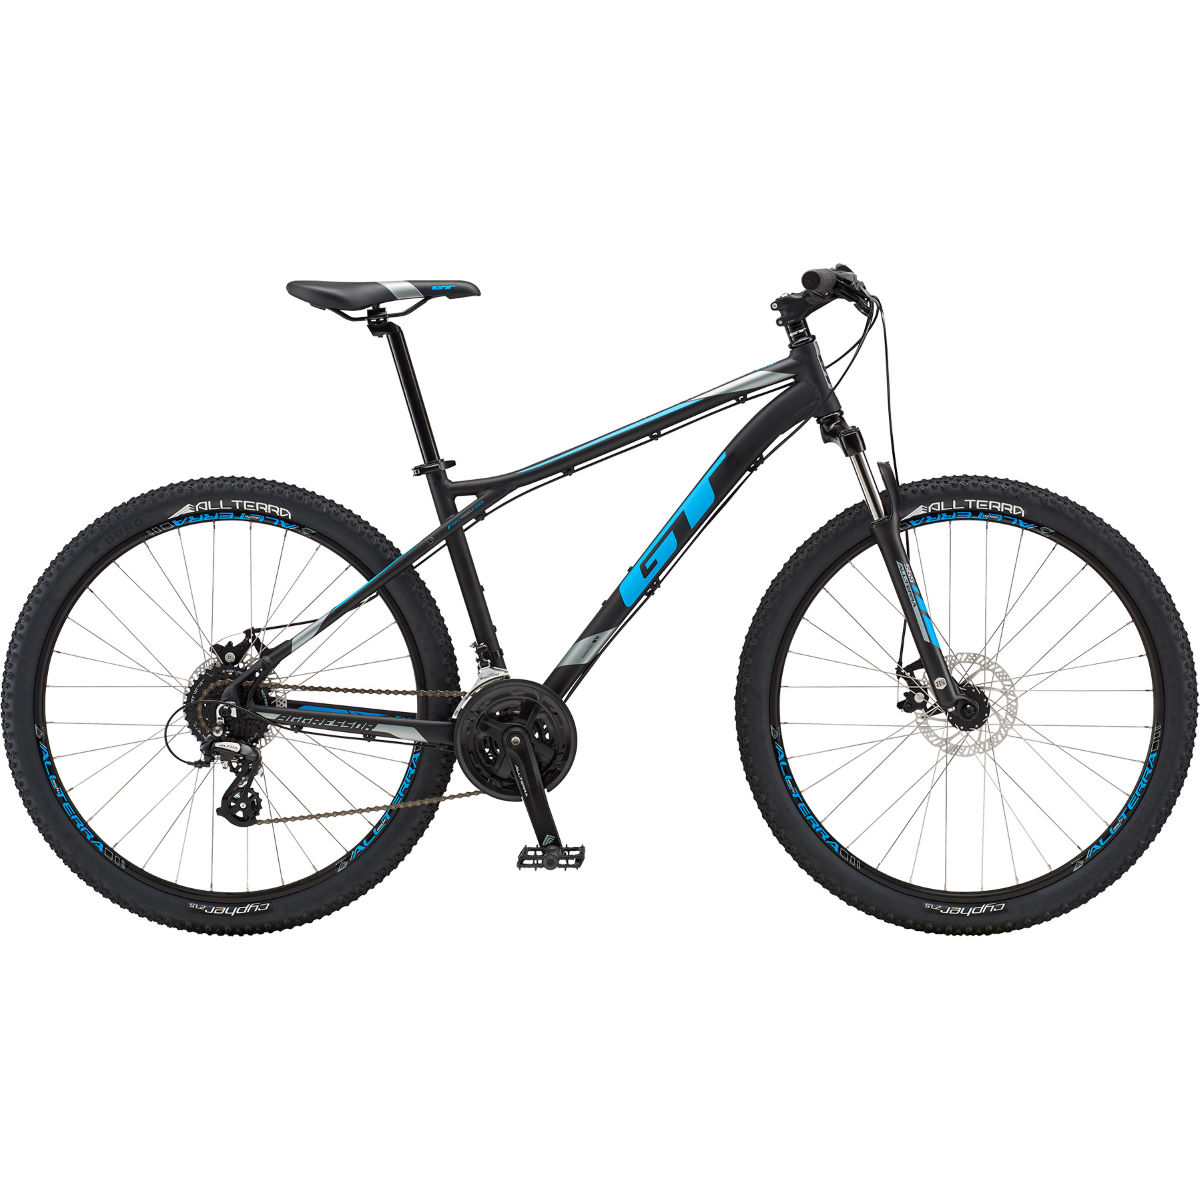 VTT semi-rigide GT Aggressor Comp 27.5 - Large Stock Bike Noir